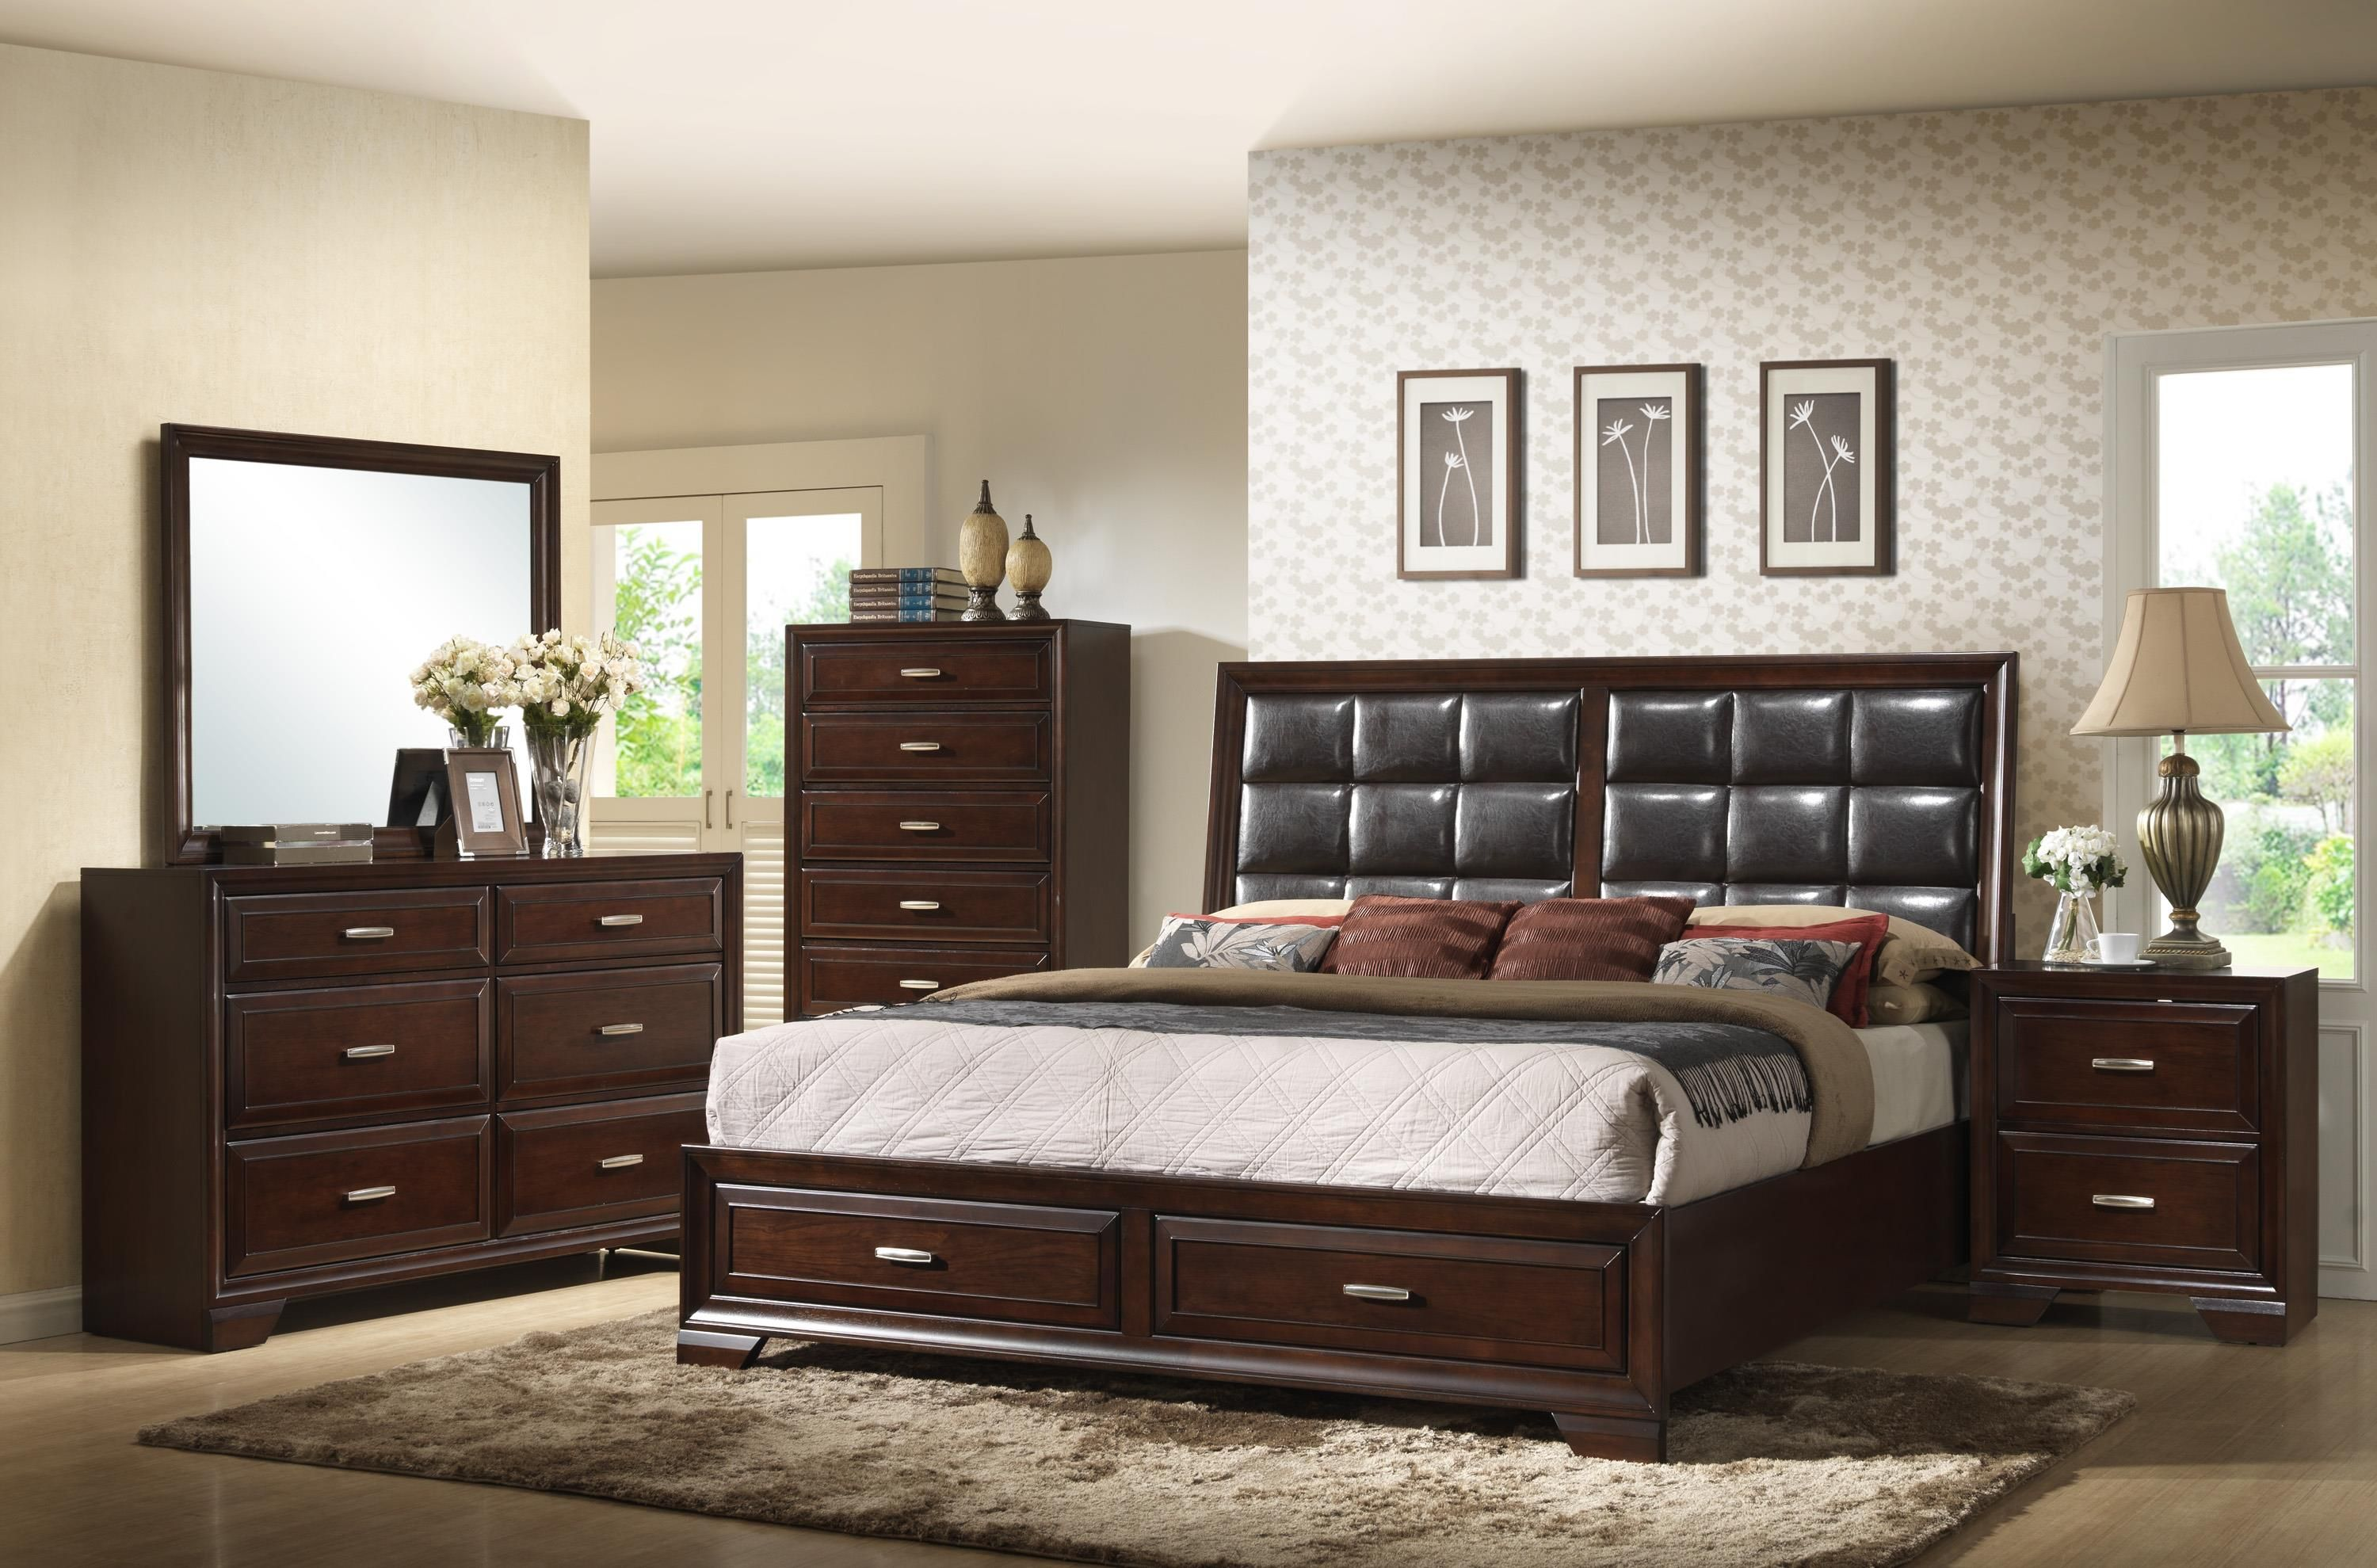 Jacob Queen Bedroom Group by Crown Mark | Semia | King ...